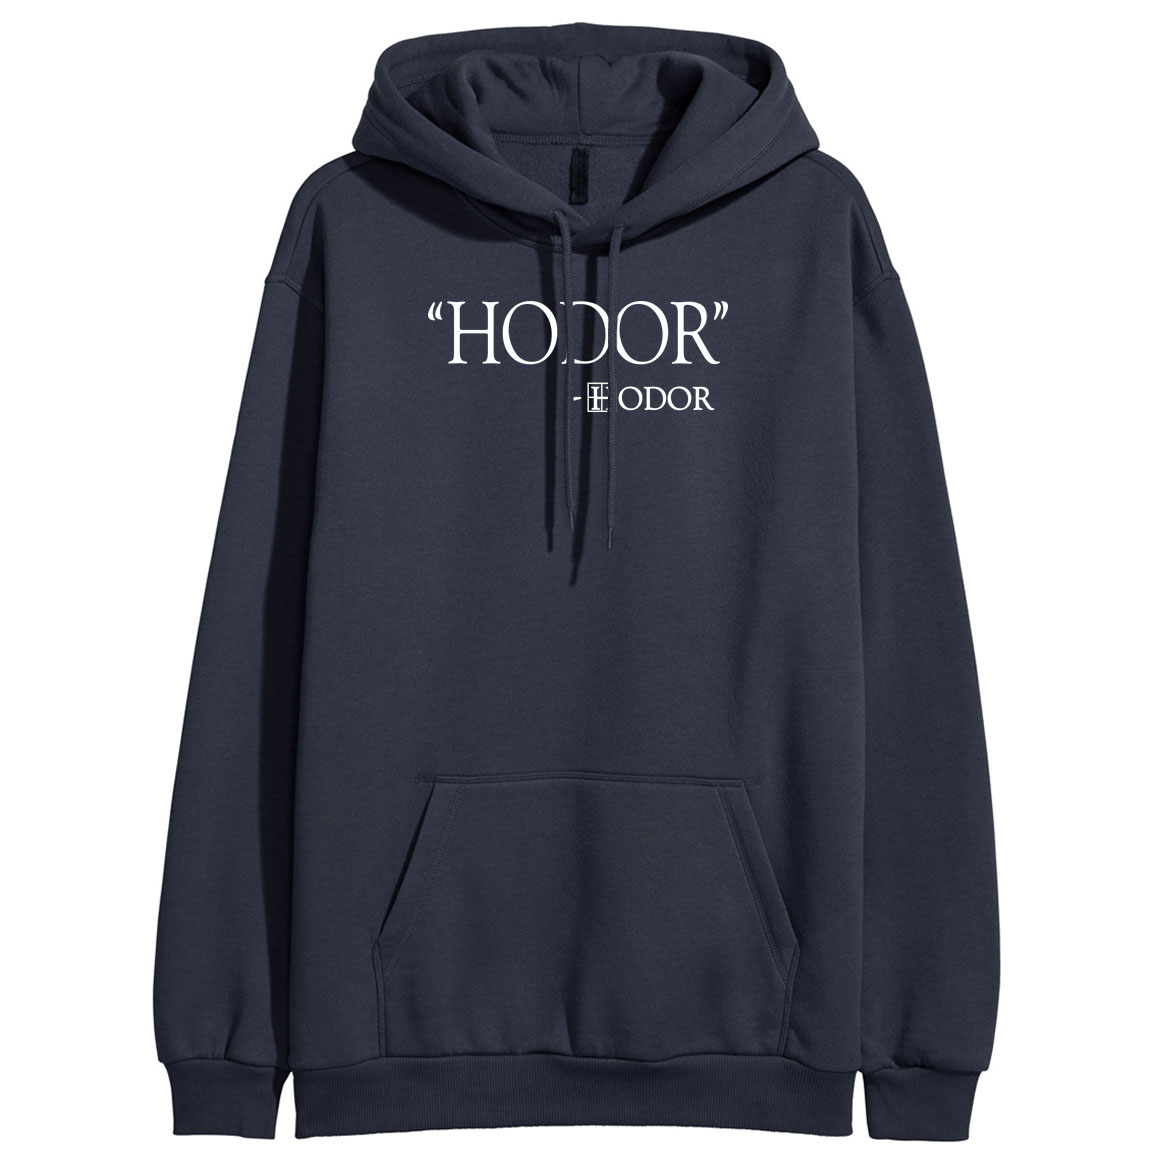 Game of Throne Hodor Fashion Women's Hoodies 2019 Spring Winter Sweatshirt For Women Fleece Hoody Tracksuit Sportswear Kawaii